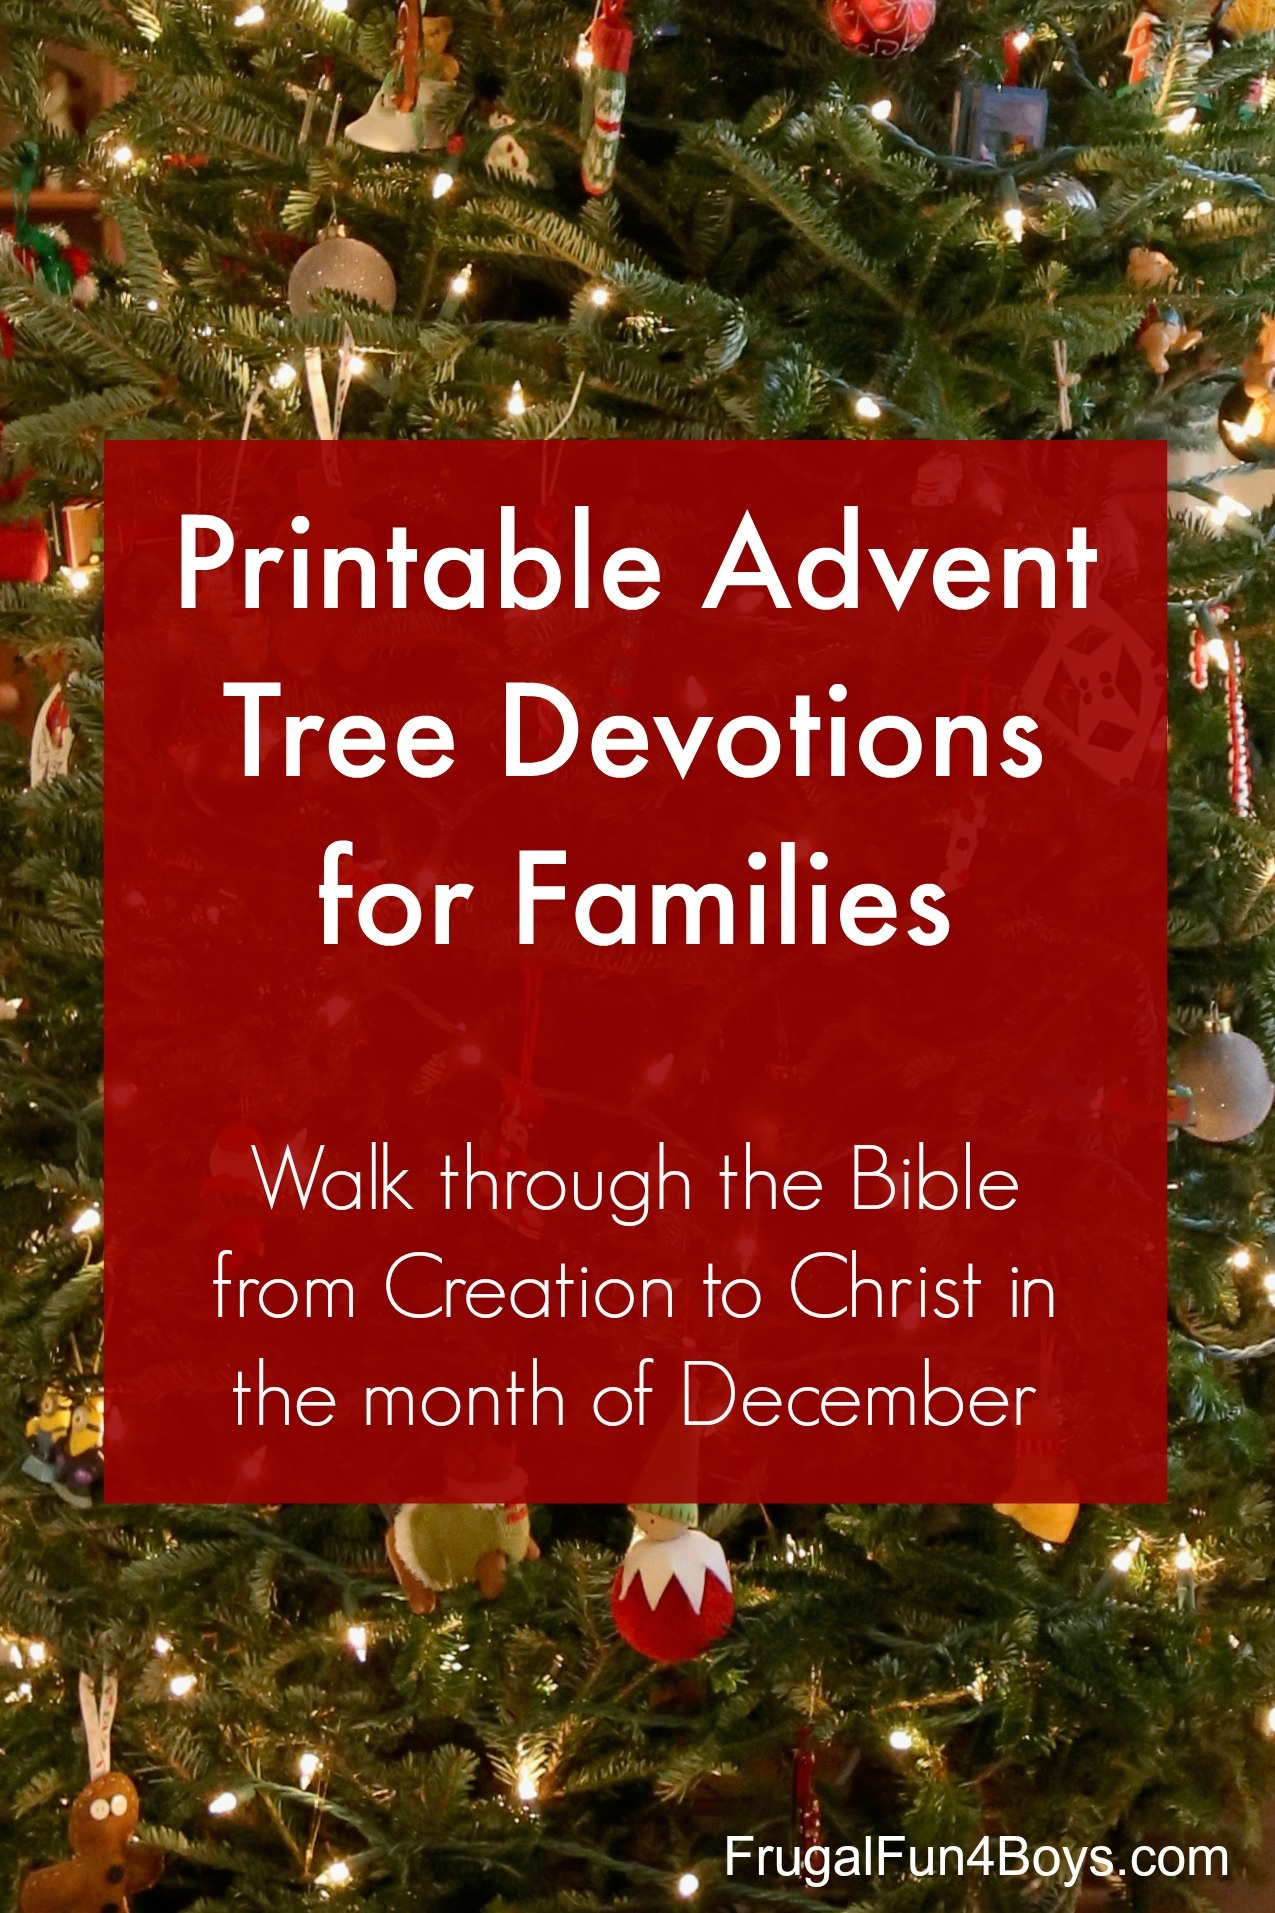 Download And Print Advent Jesse Tree Devotions - Frugal Fun For Boys - Free Printable Advent Devotions